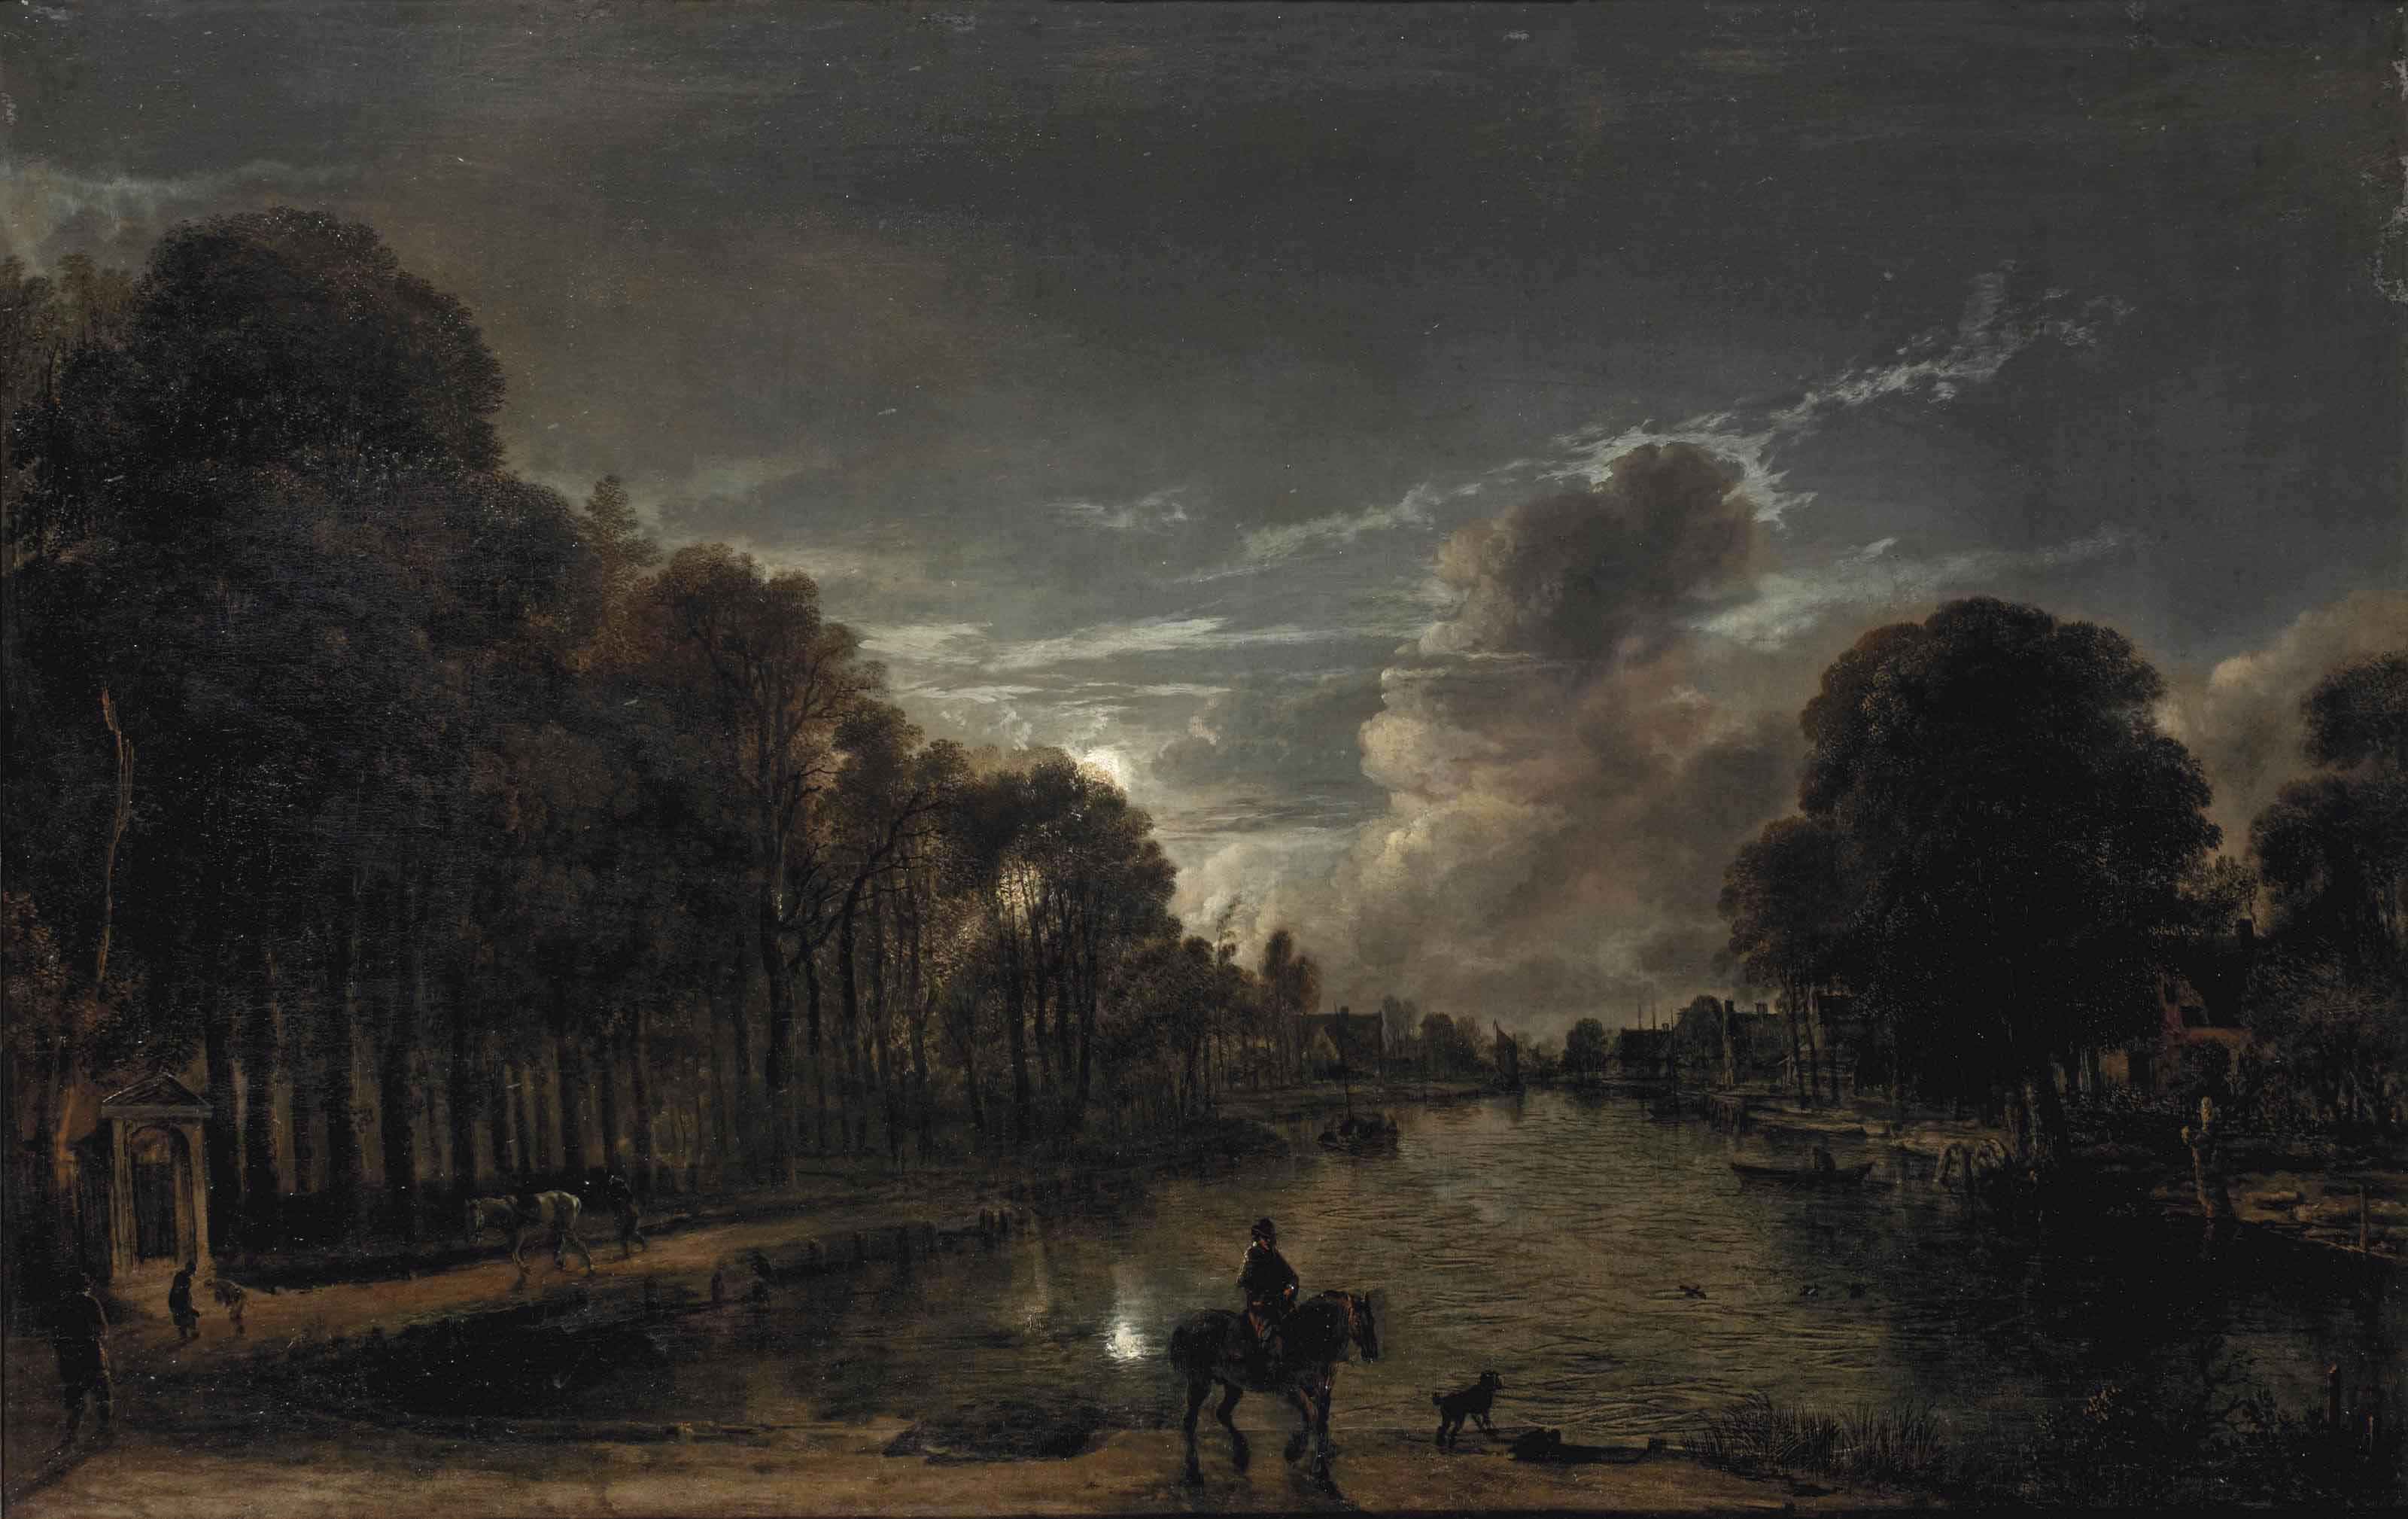 A moonlit wooded landscape with a horseman and other figures by a canal, a town beyond